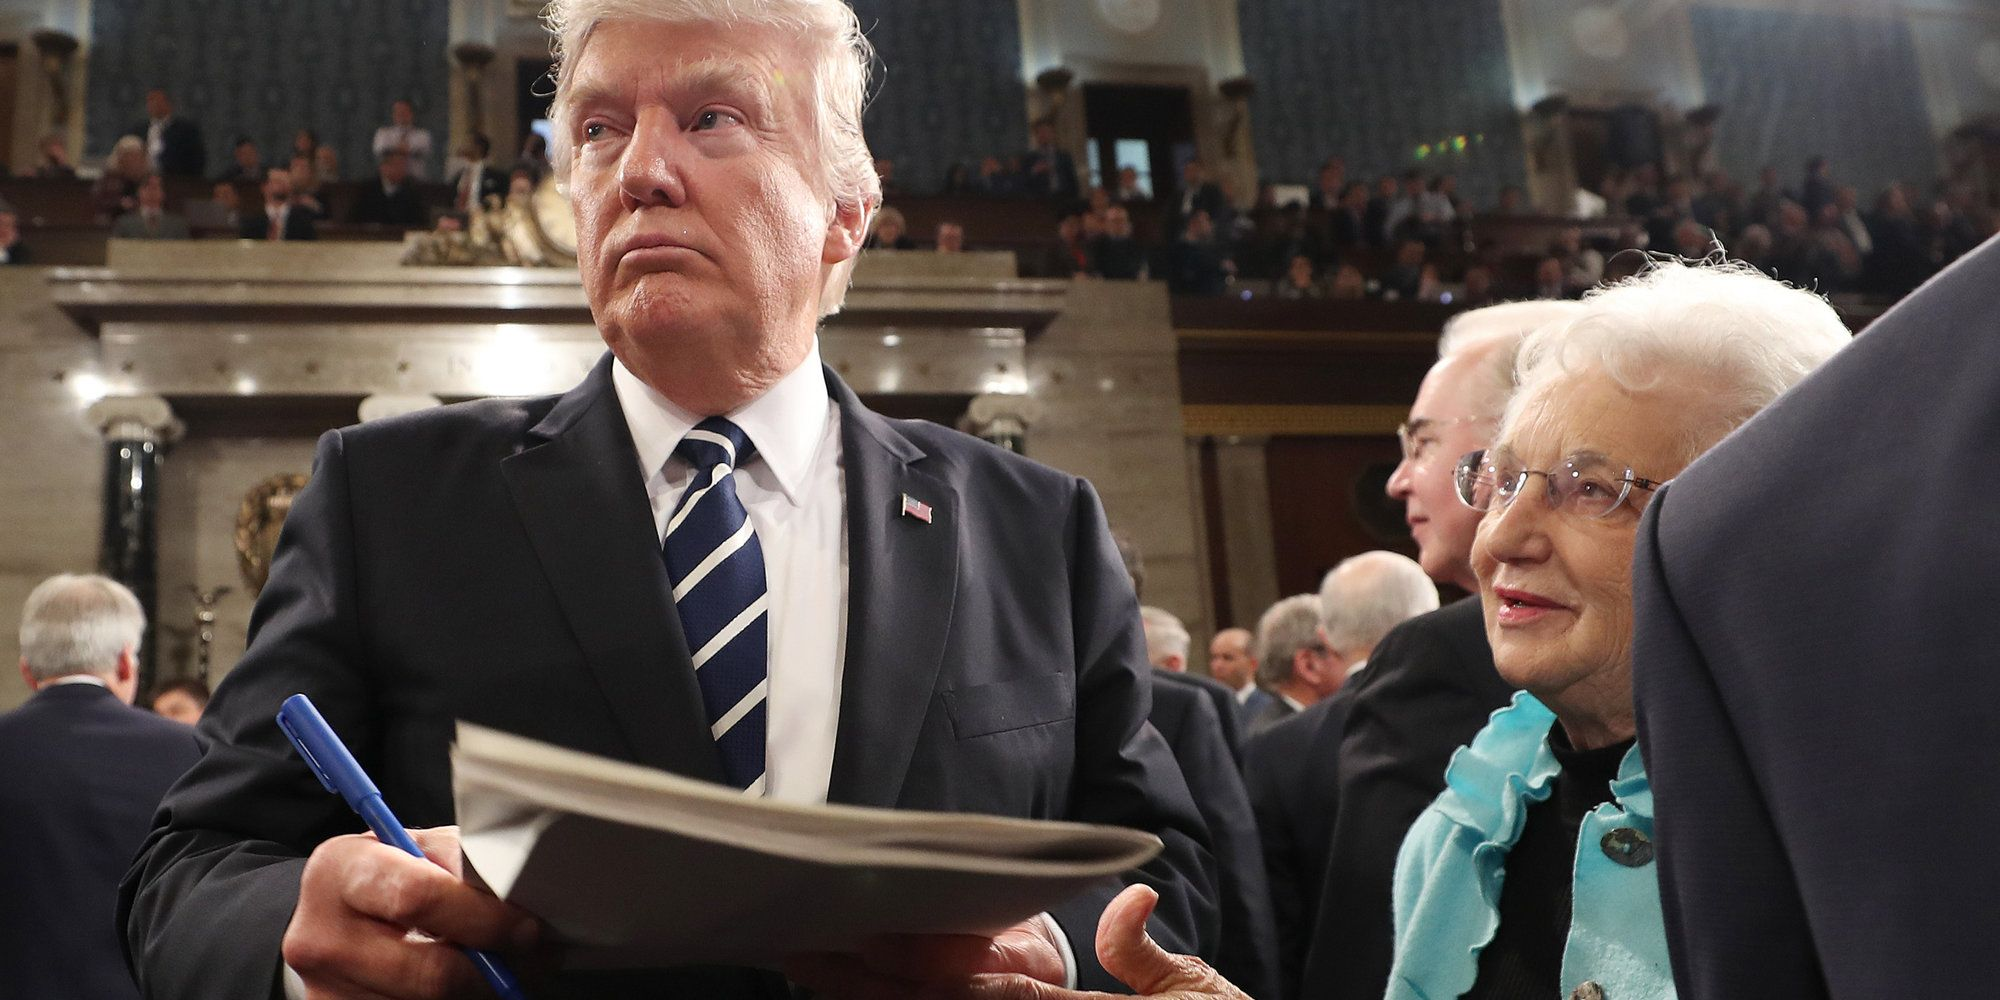 Donald Trump's Actual Policies Contradict His Joint Session Speech | The Huffington Post